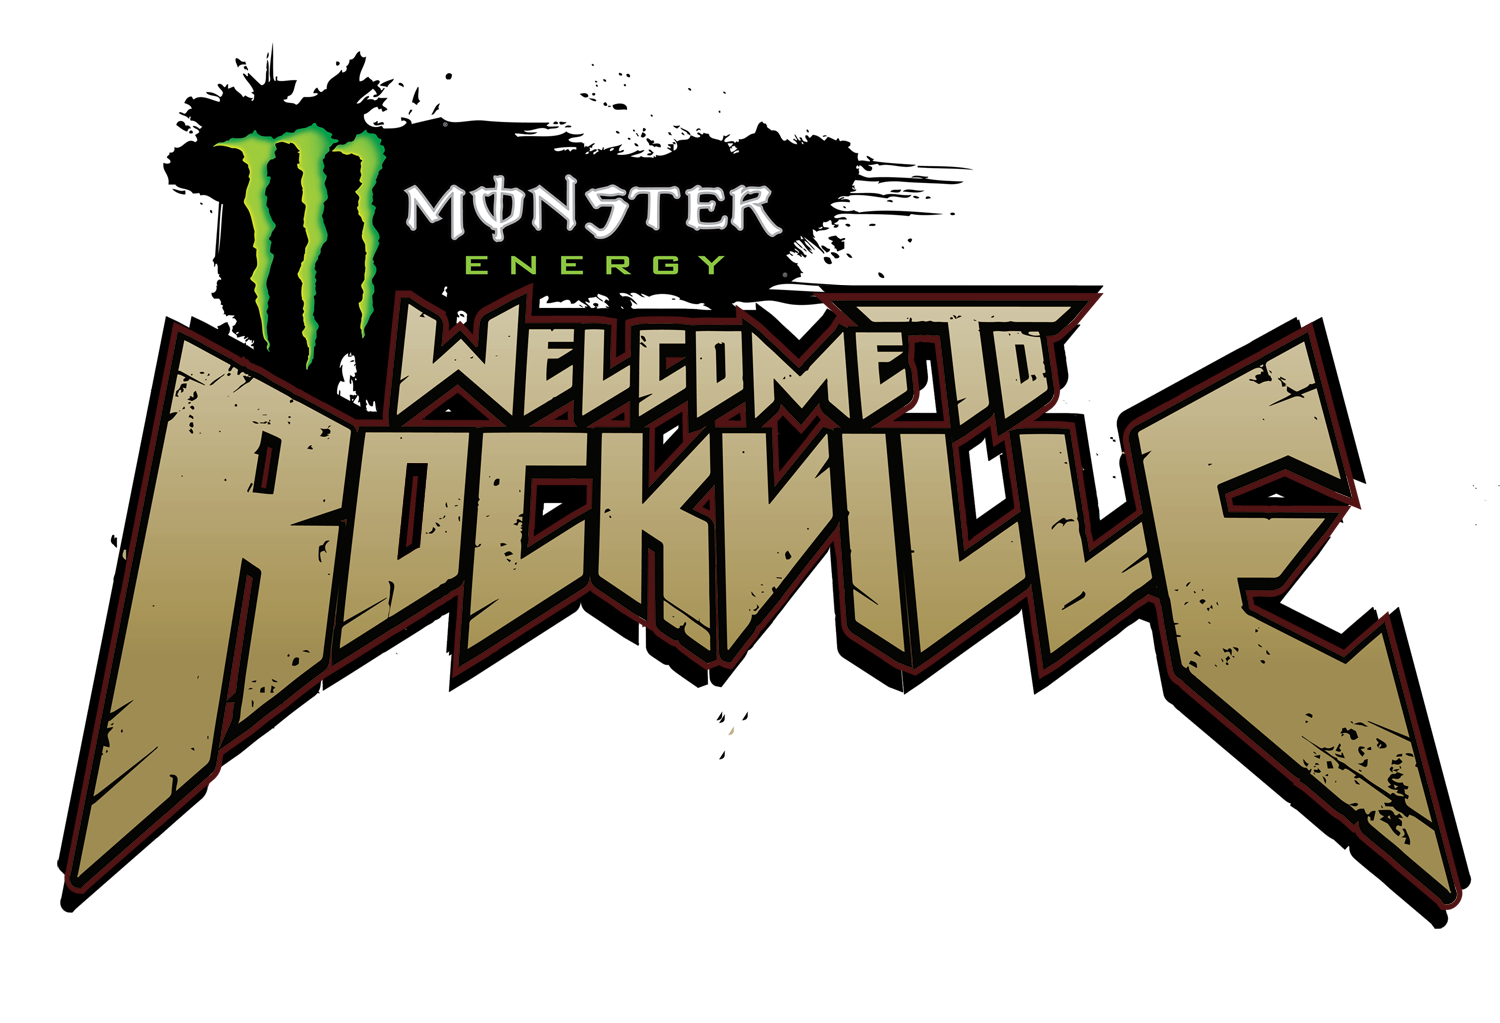 PRESS RELEASE:  Monster Energy Welcome To Rockville: Metalachi Video, Graffiti Artist RISK, Tequila World Details & Onsite Sponsor Activities